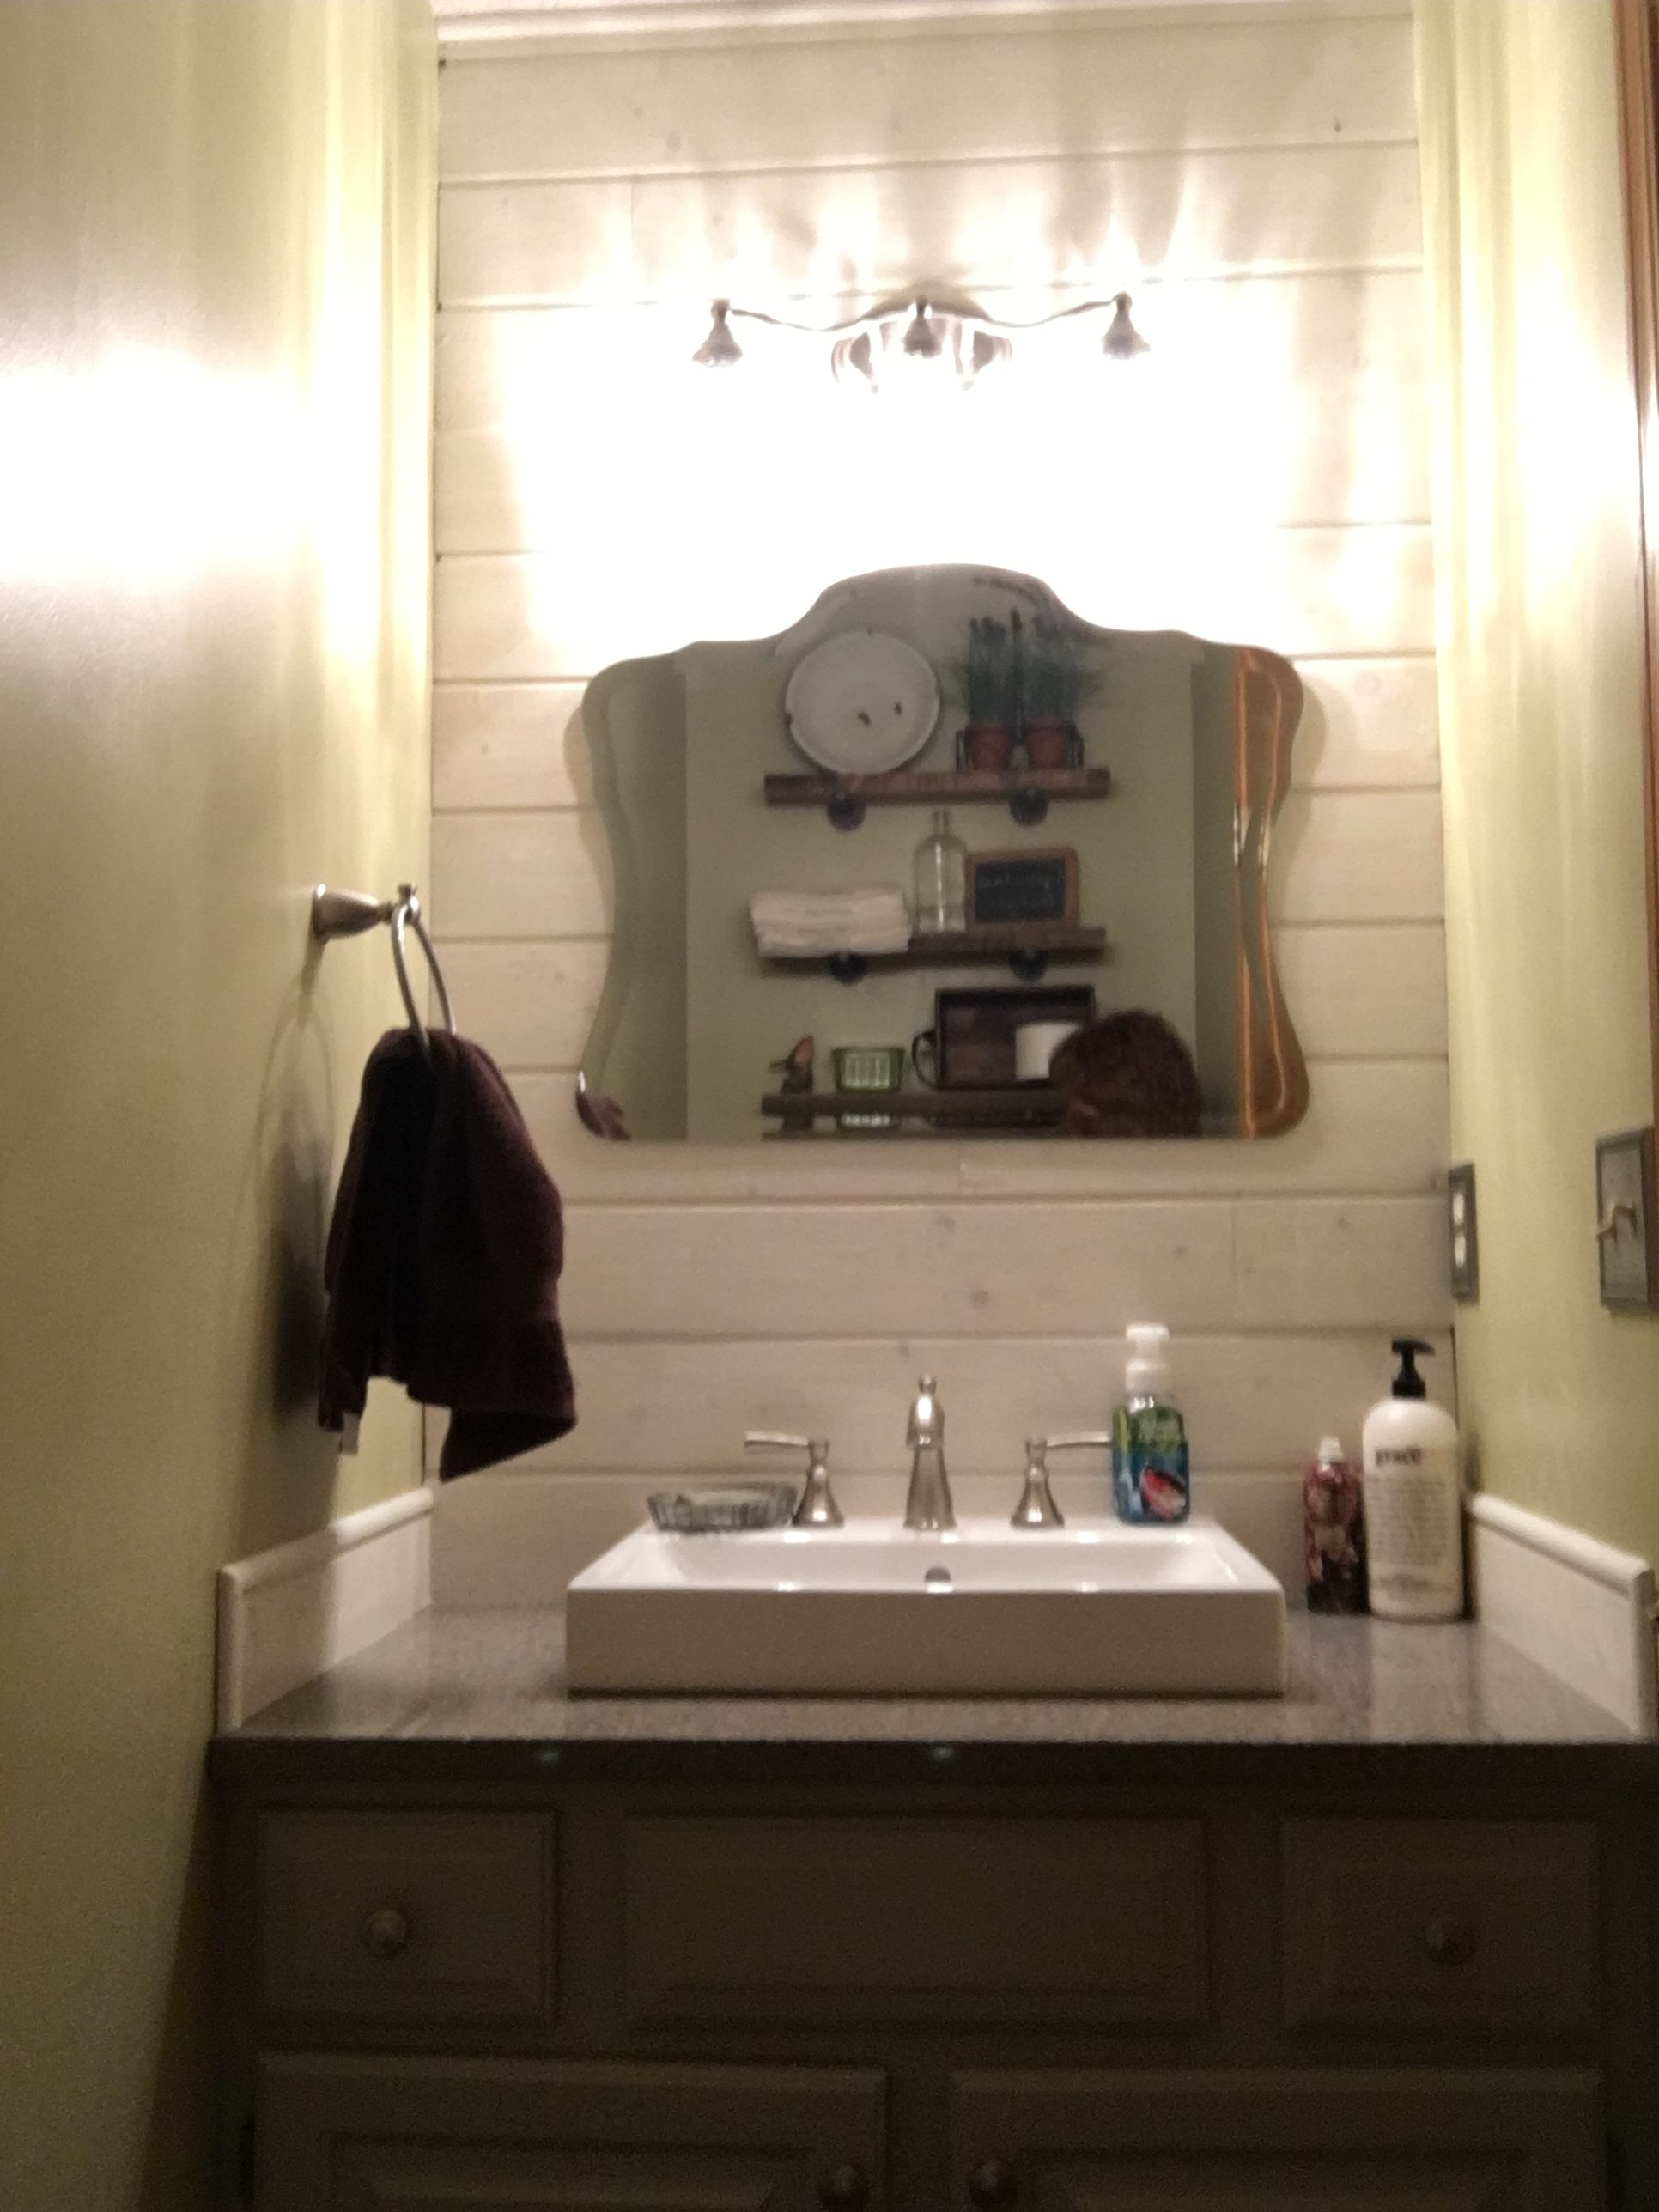 Mirror from Home Depot. Sink from Lowes. Small farmhouse